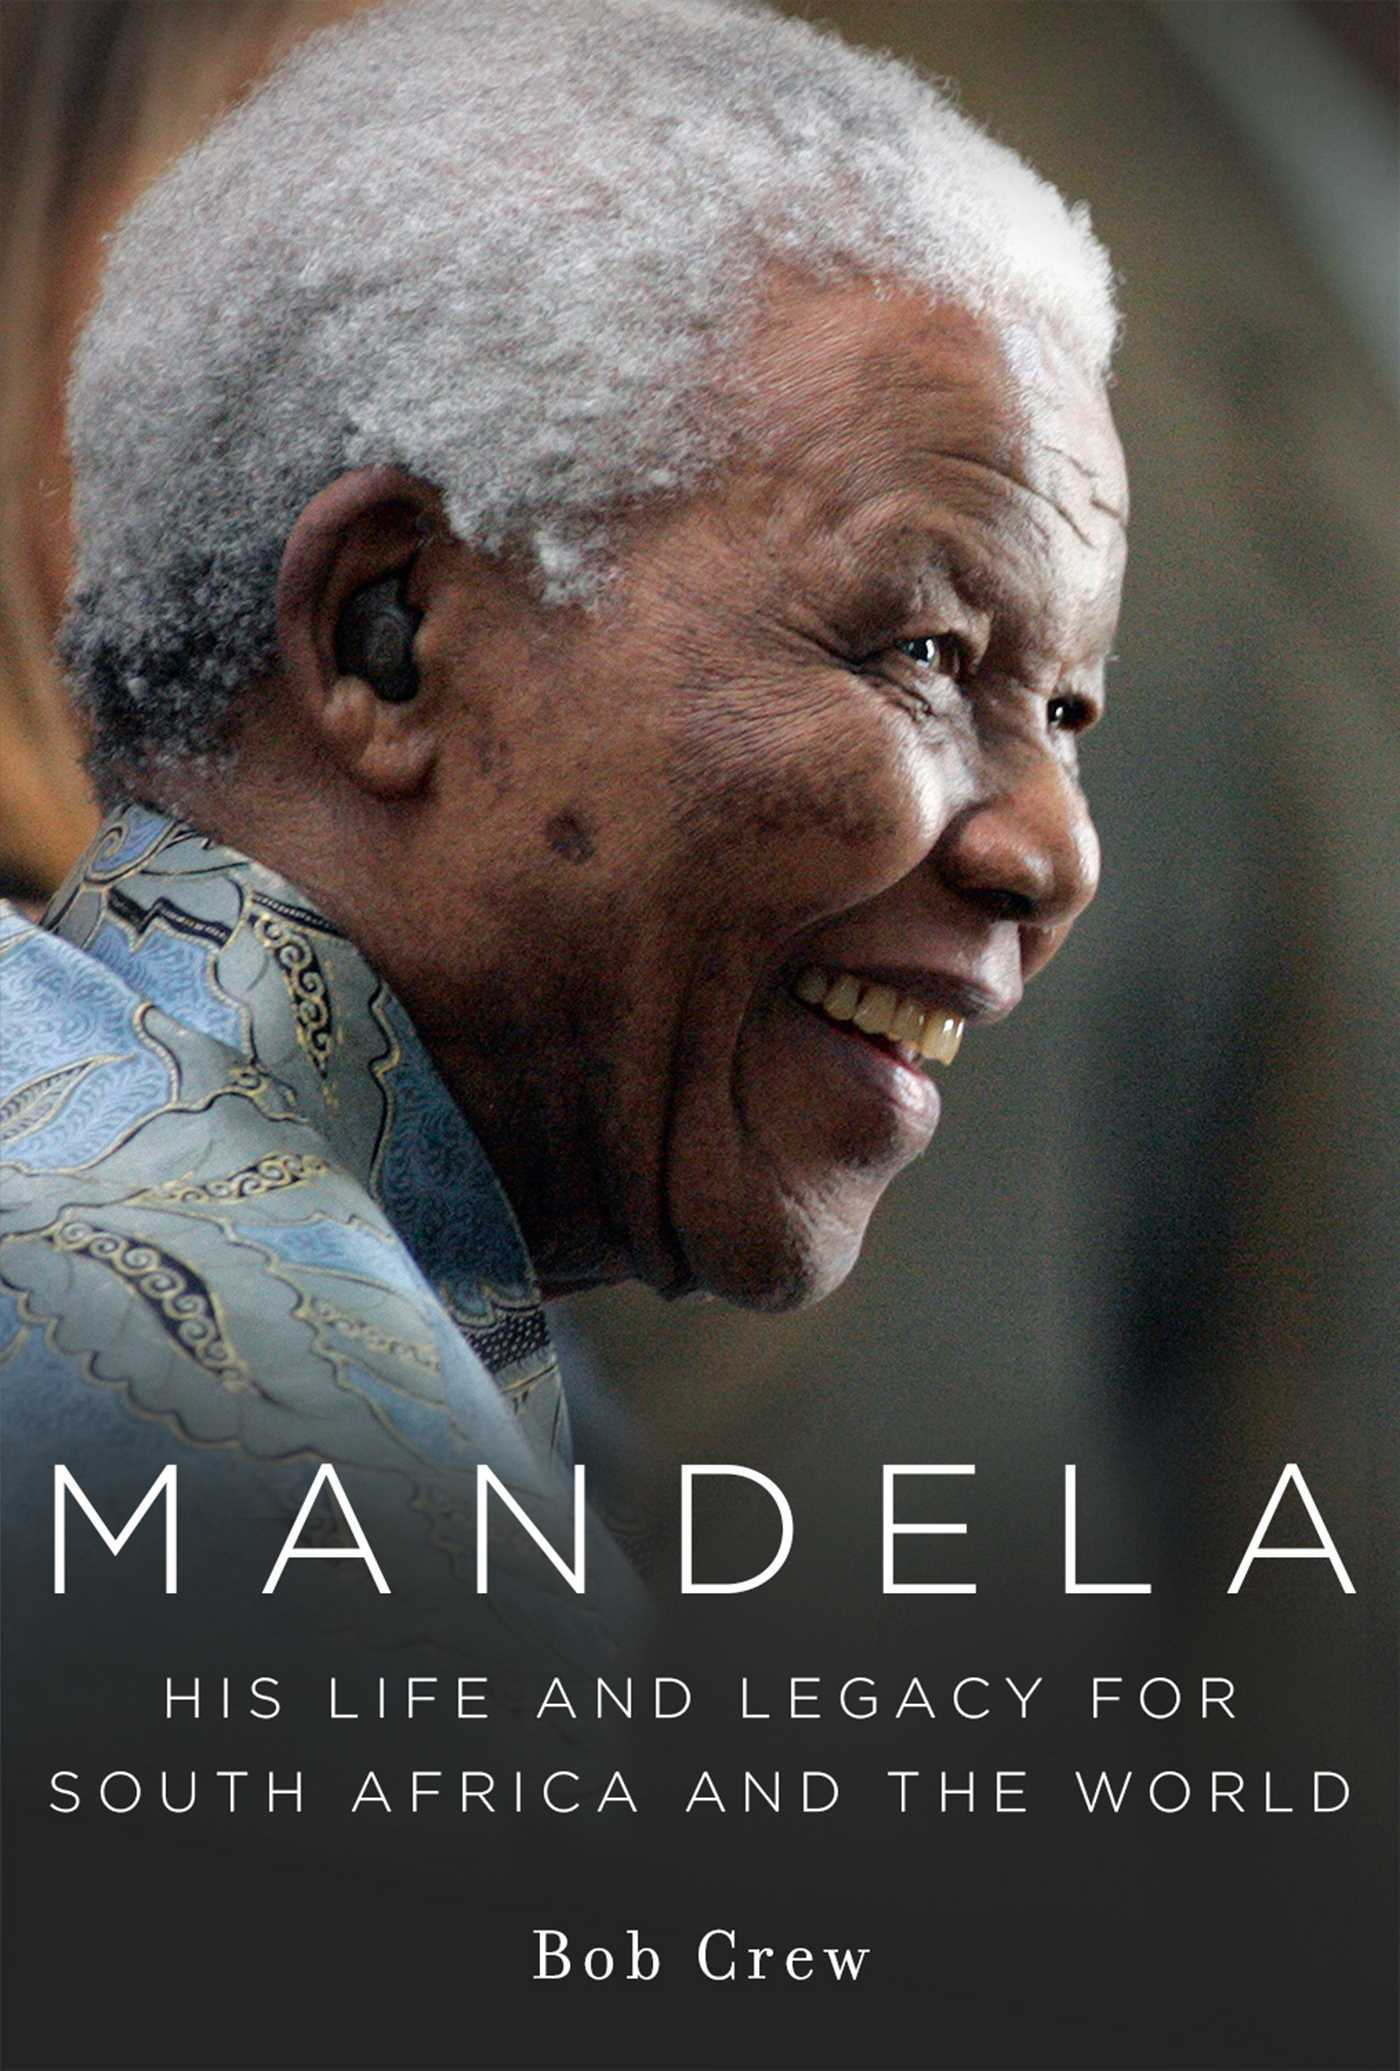 Mandela His Life and Legacy for South Africa and the World